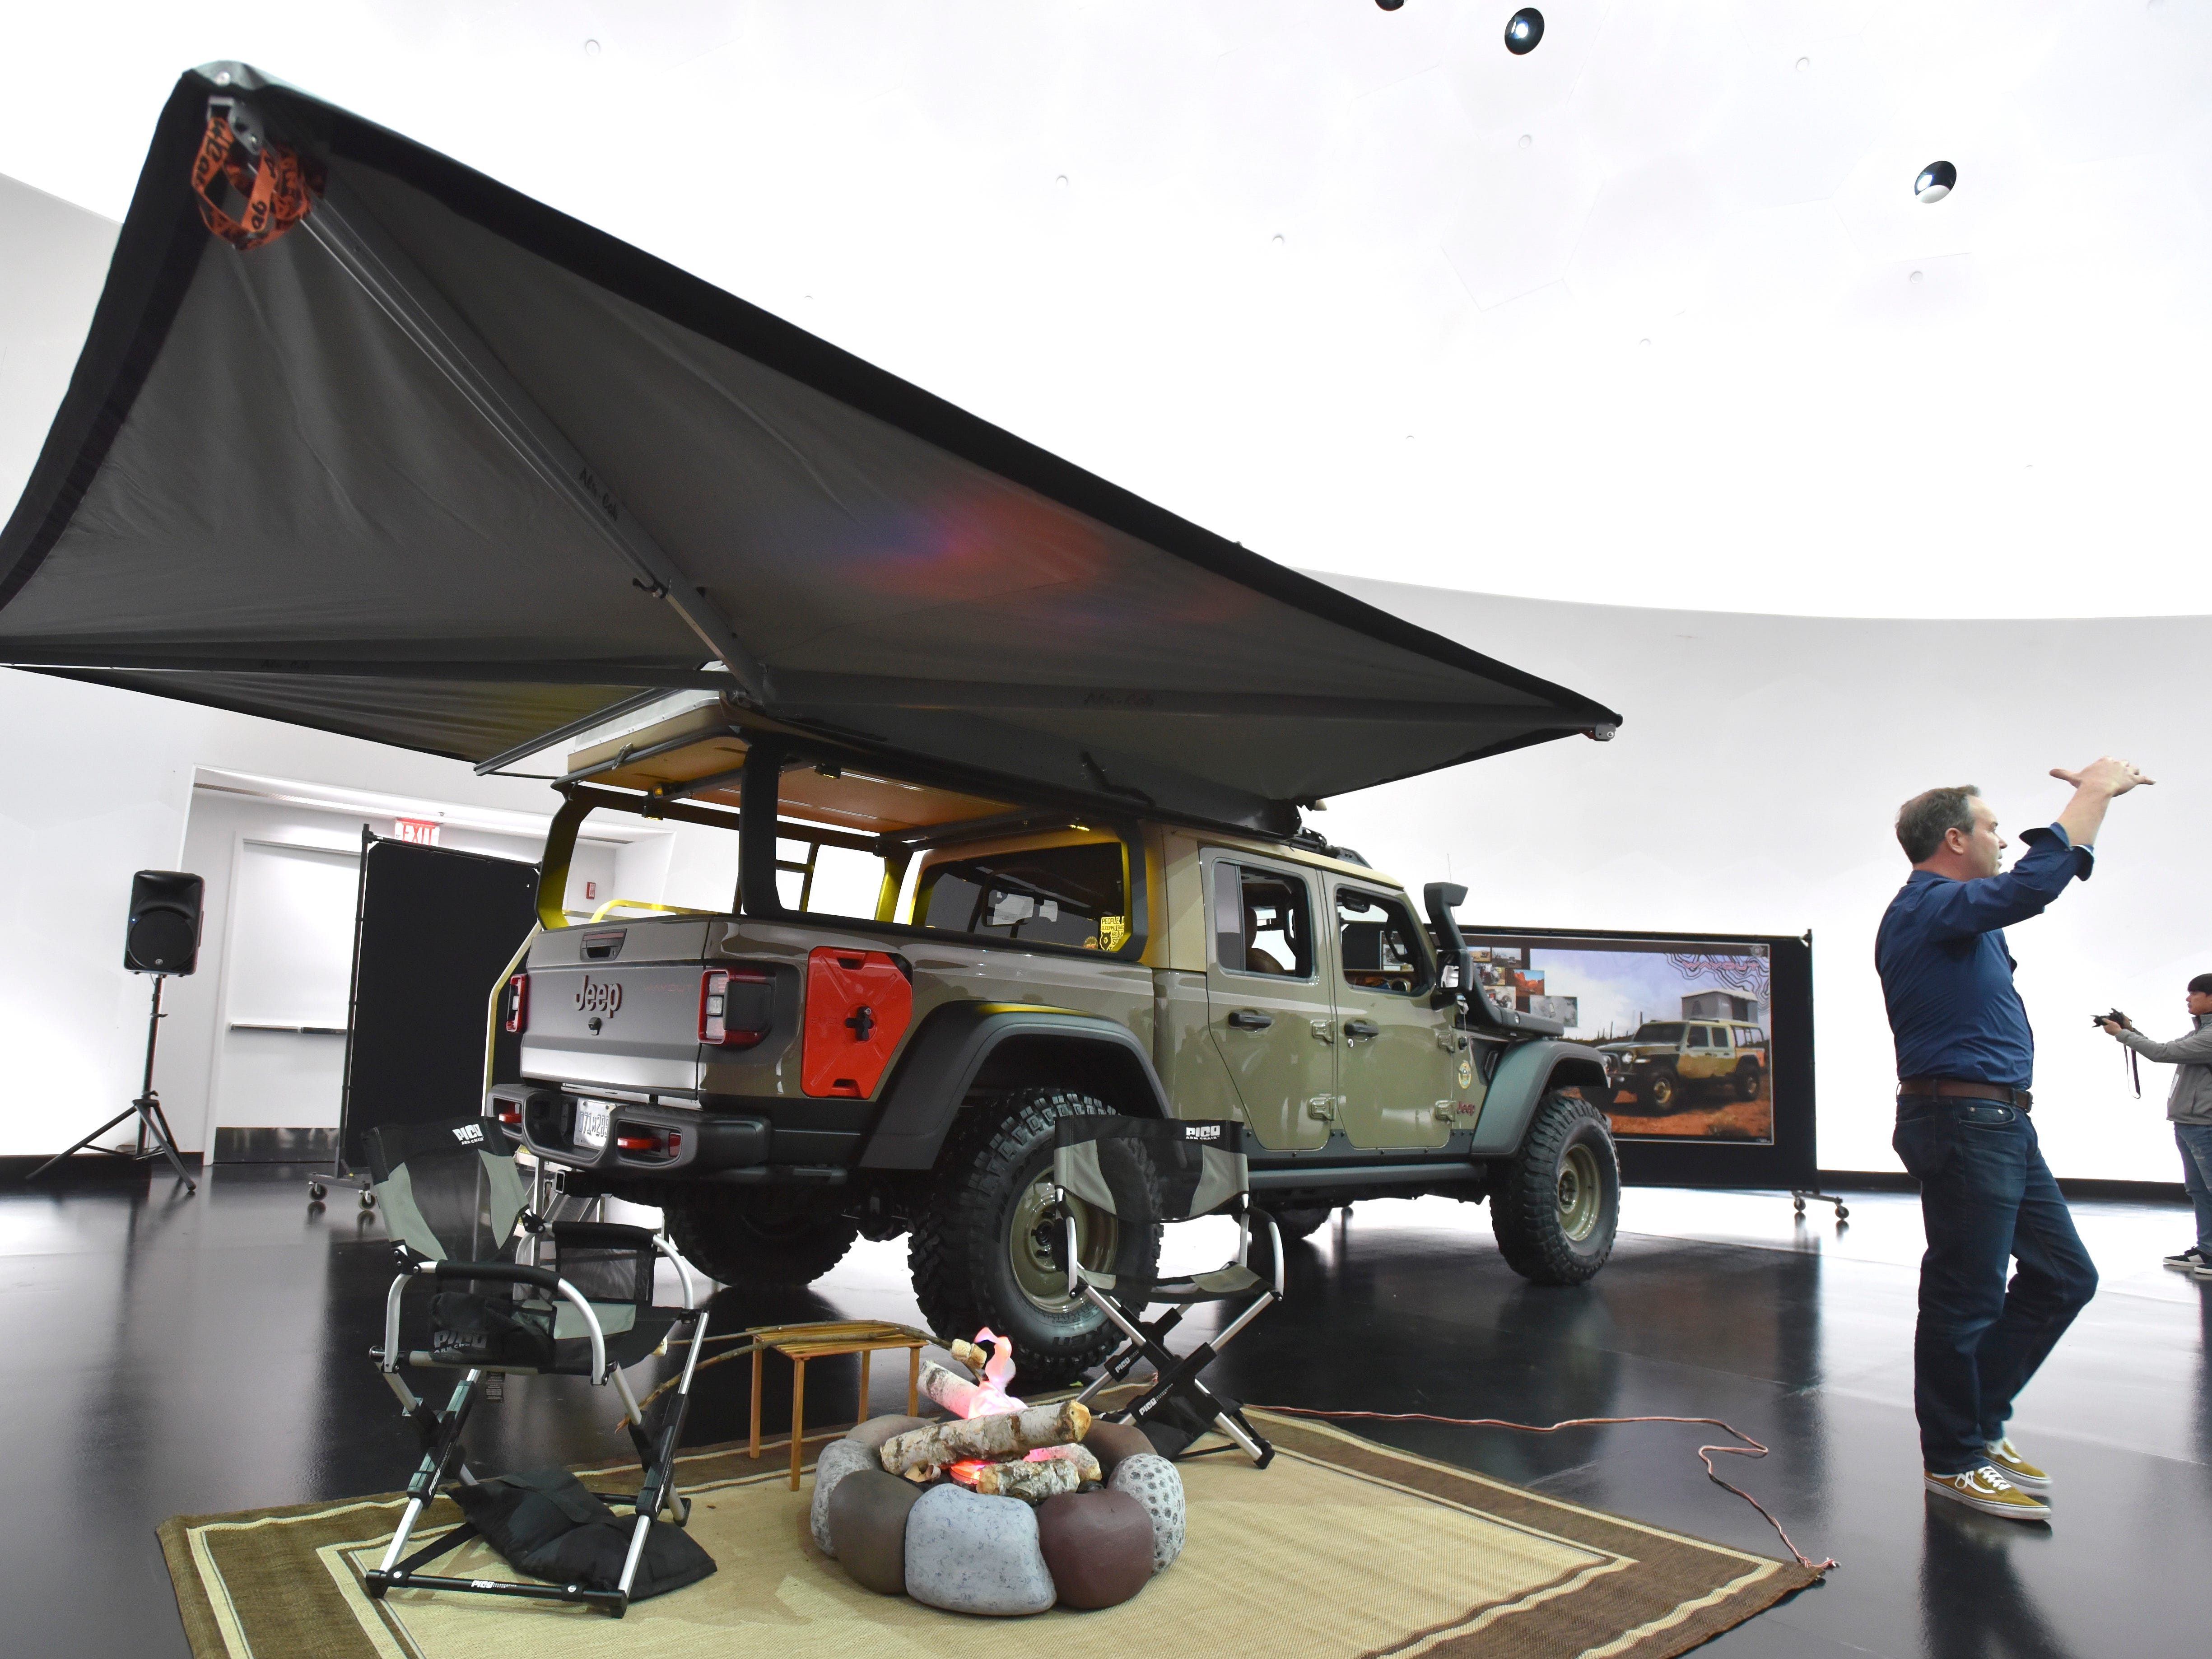 Mark Allen, Head of Jeep Design, talks about the Jeep Wayout, an overlanding concept vehicle, with a full roof-top tent and custom canopy.